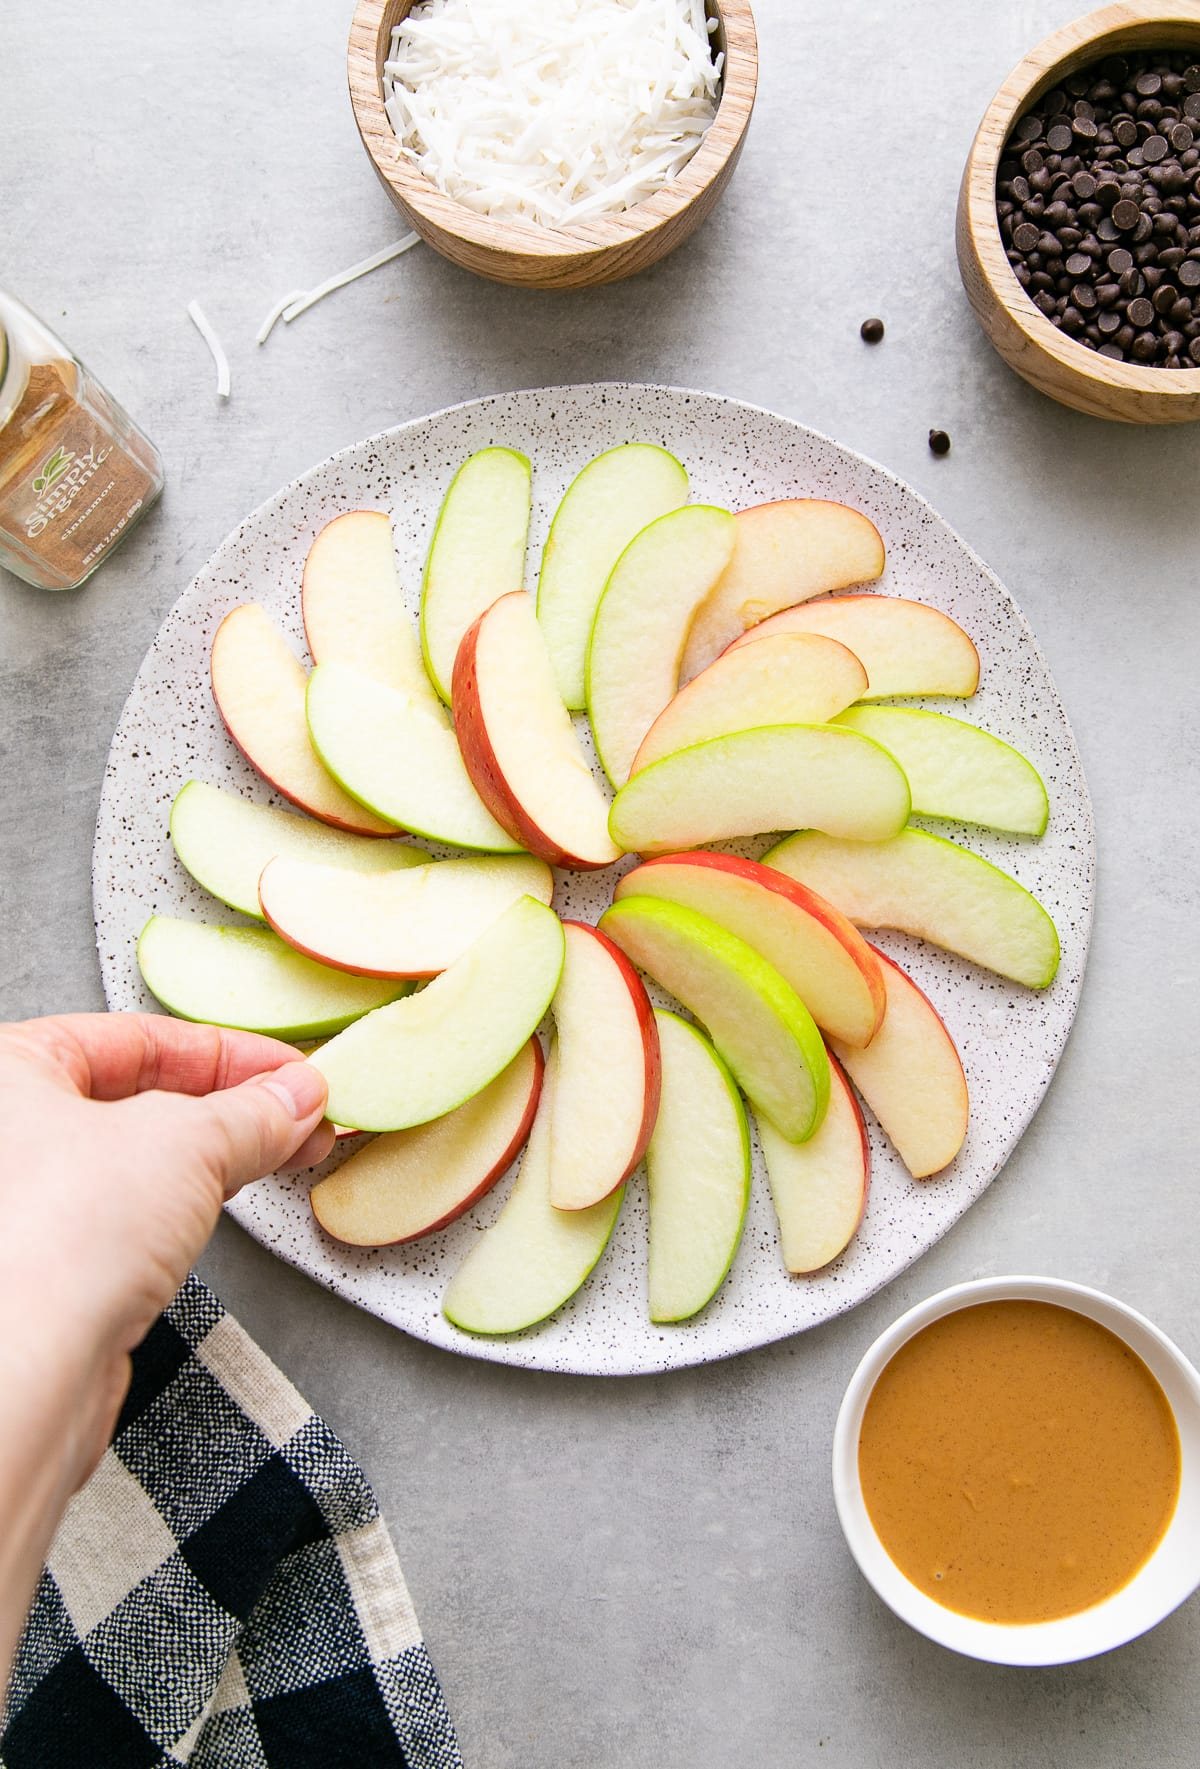 top down view showing the process of layering apples on plate with items surrounding.